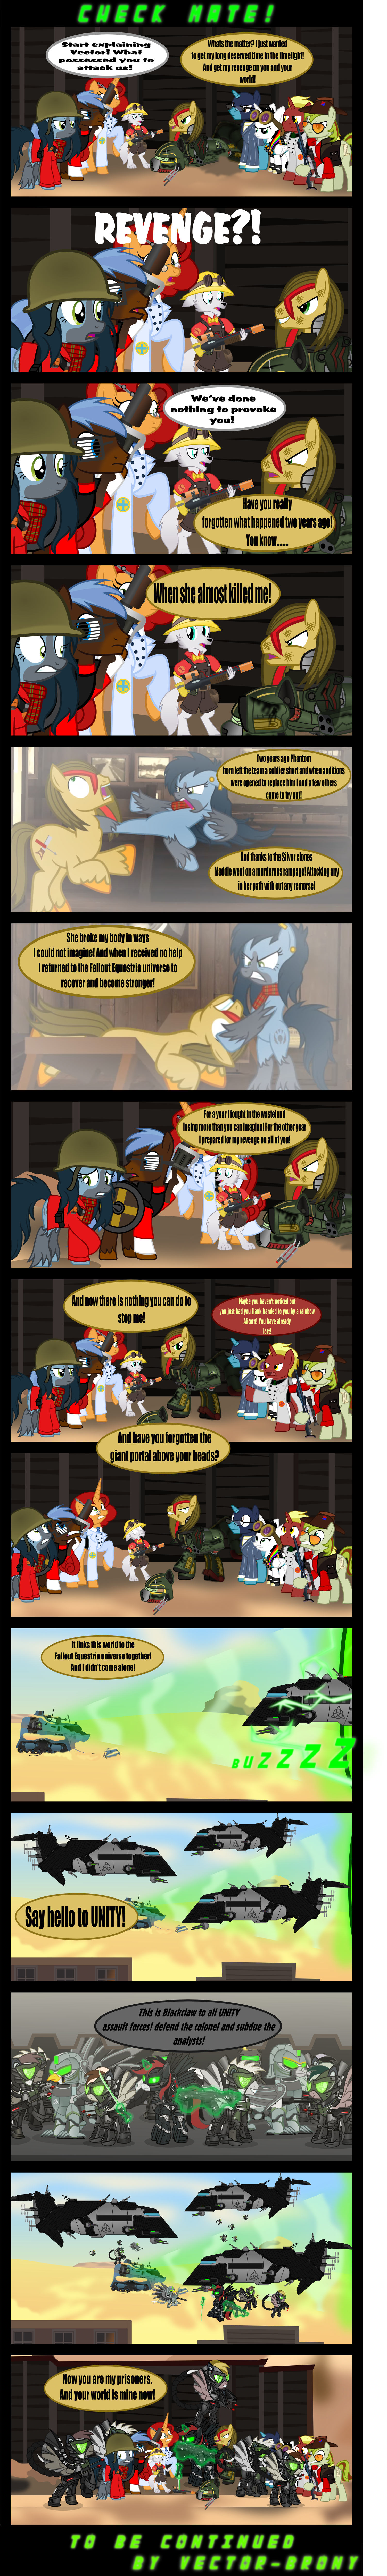 check mate by vector brony on deviantart